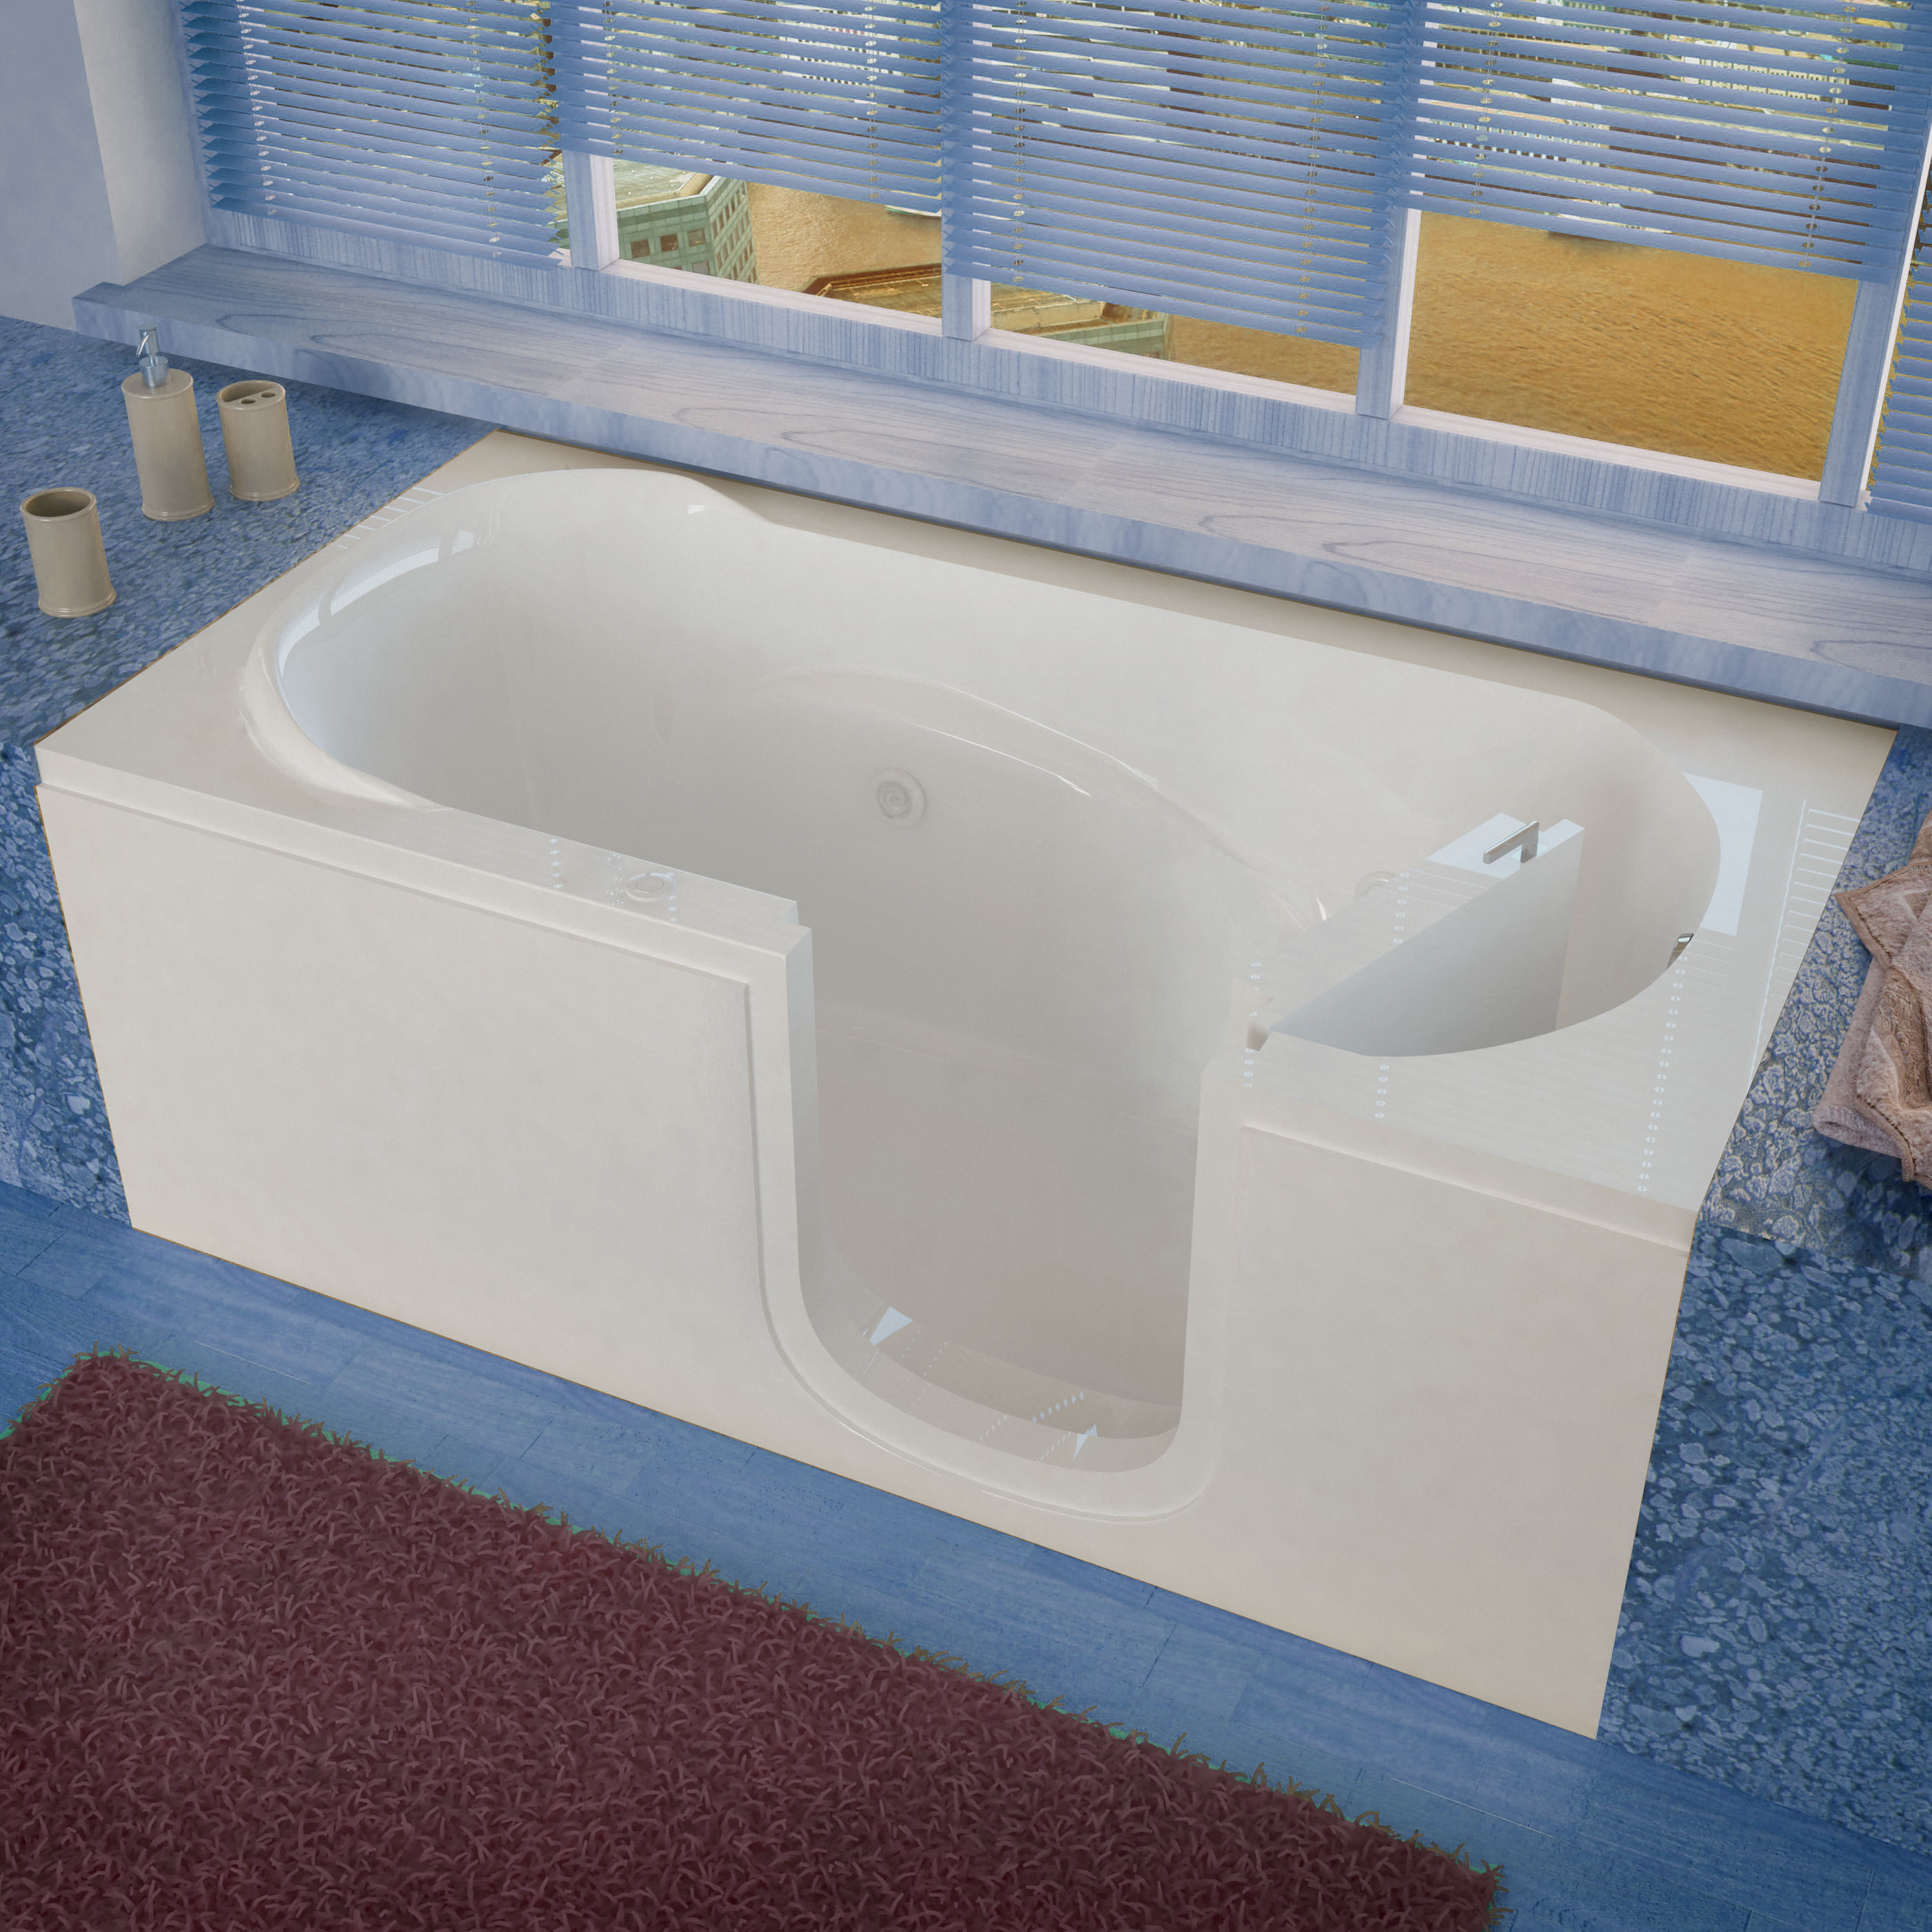 30x60 Right Drain White Whirlpool Jetted Step-In Bathtub